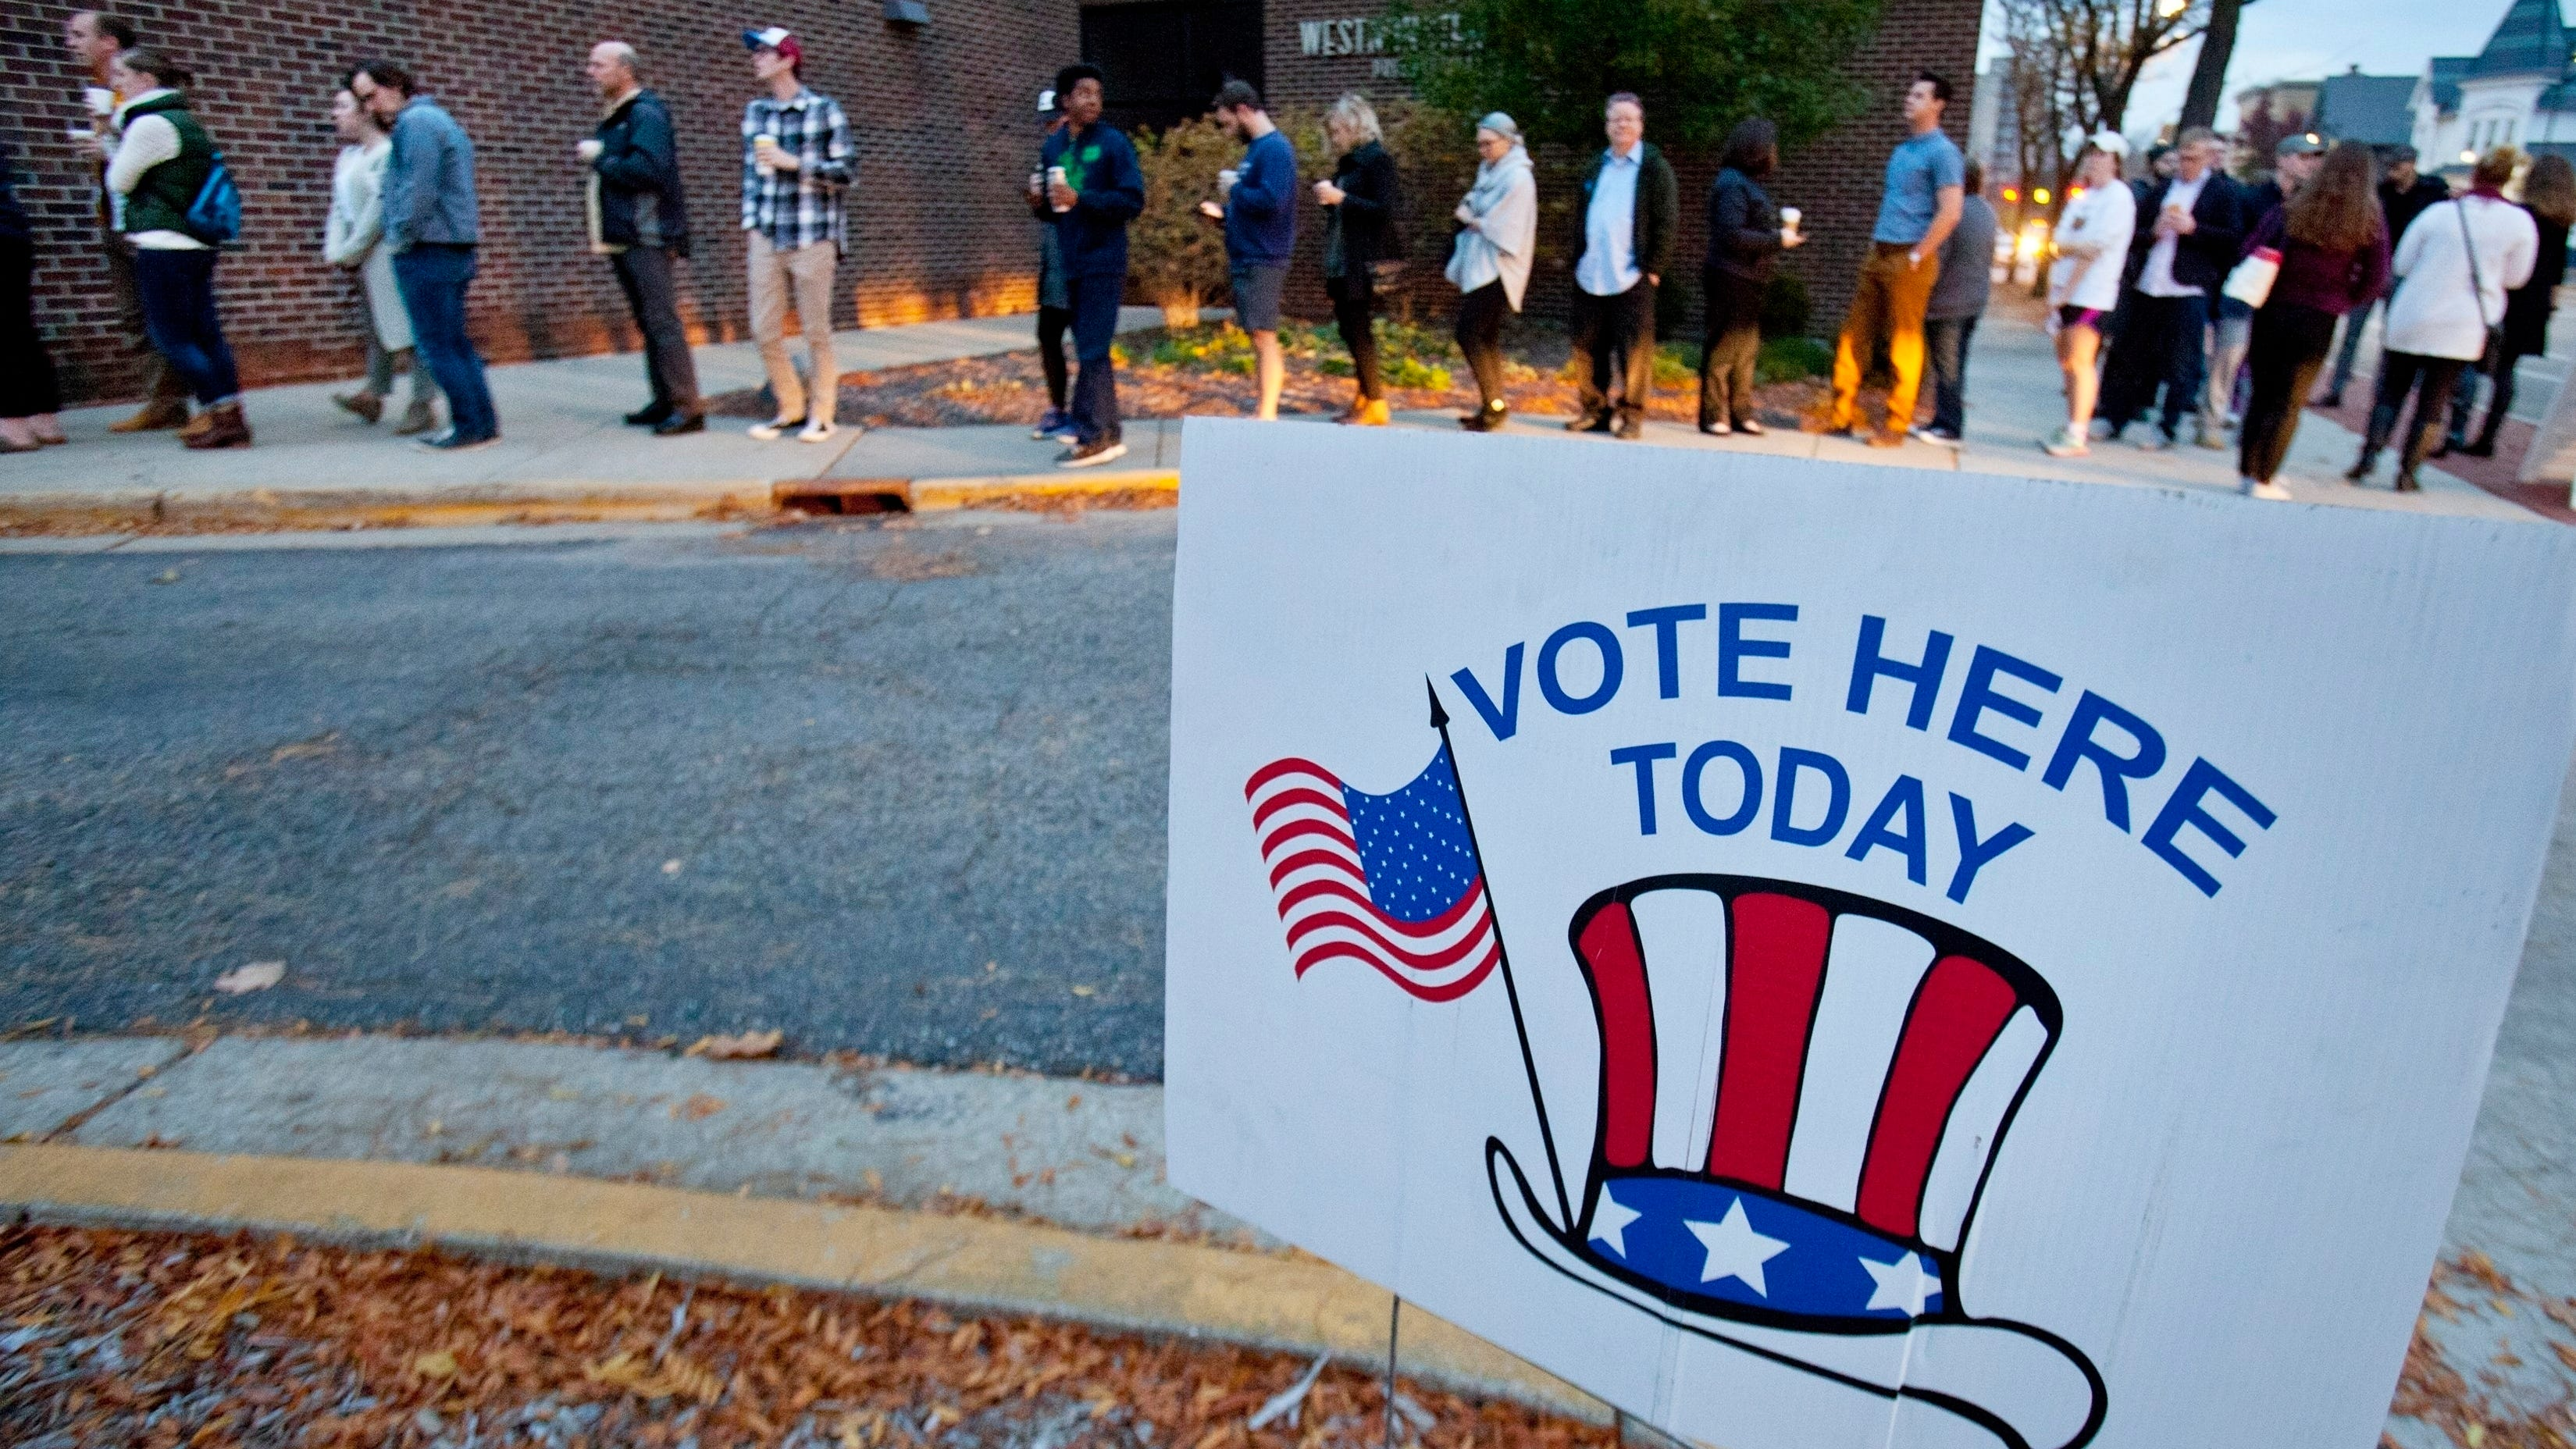 Voters line up to cast their ballot at Westminster Presbyterian Church in Grand Rapids, Mich., on Nov. 8, 2016.